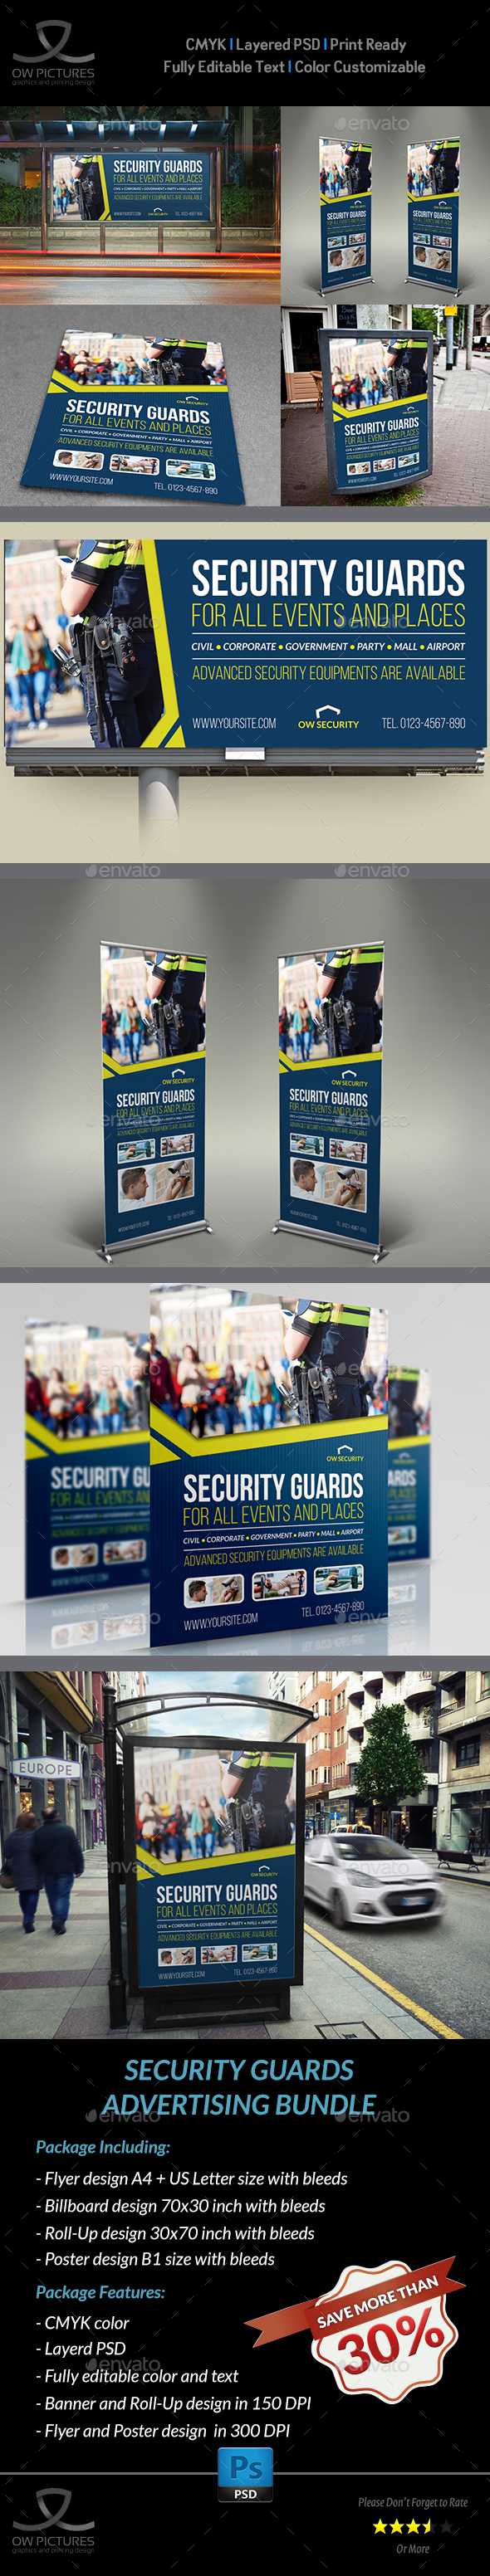 Security Guards Advertising Template - Signage Print Templates